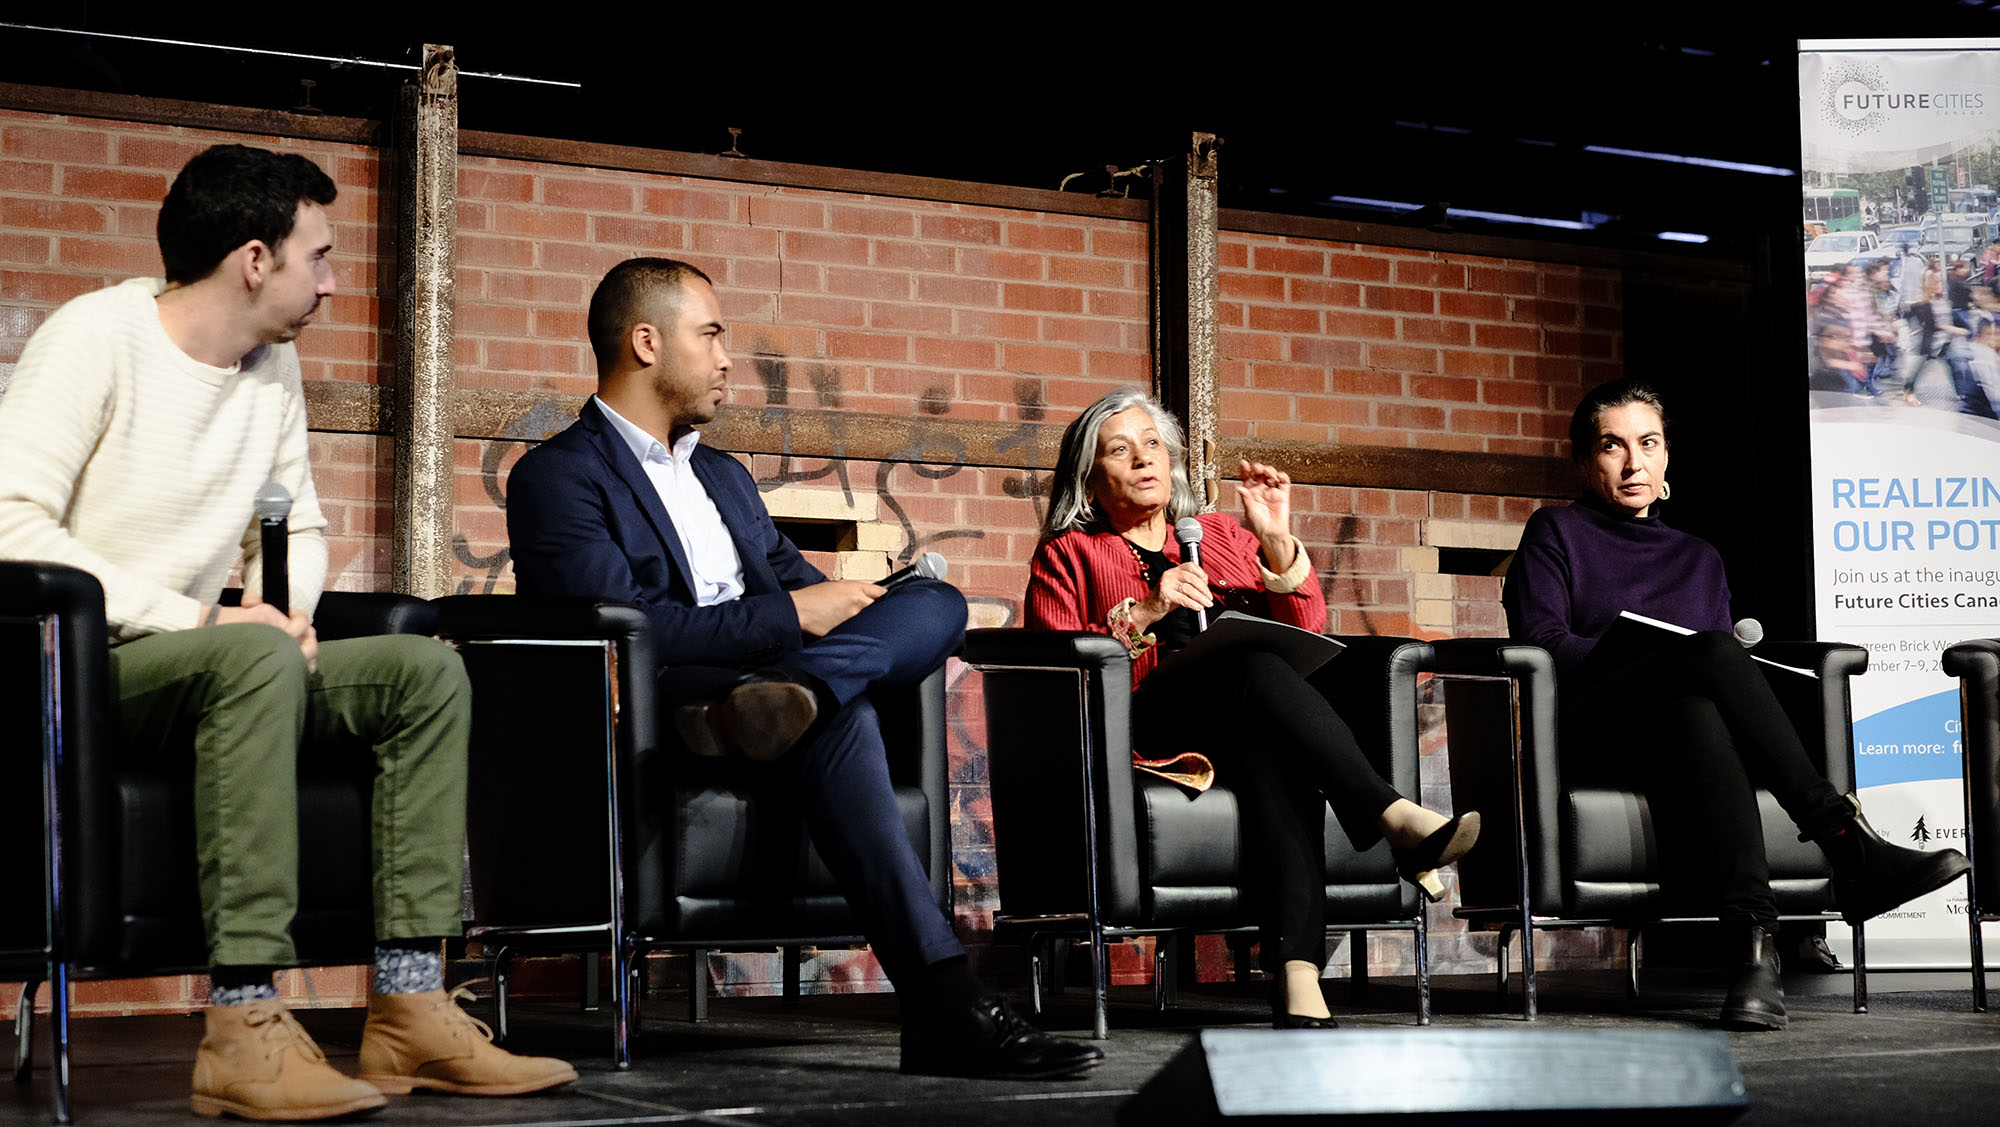 A panel at the Future Cities Canada Summit including Senator Ratna Omidvar, Tanya Talaga, Rashiq Fataar and Maxim Bregoli. Image: Layah Glassman